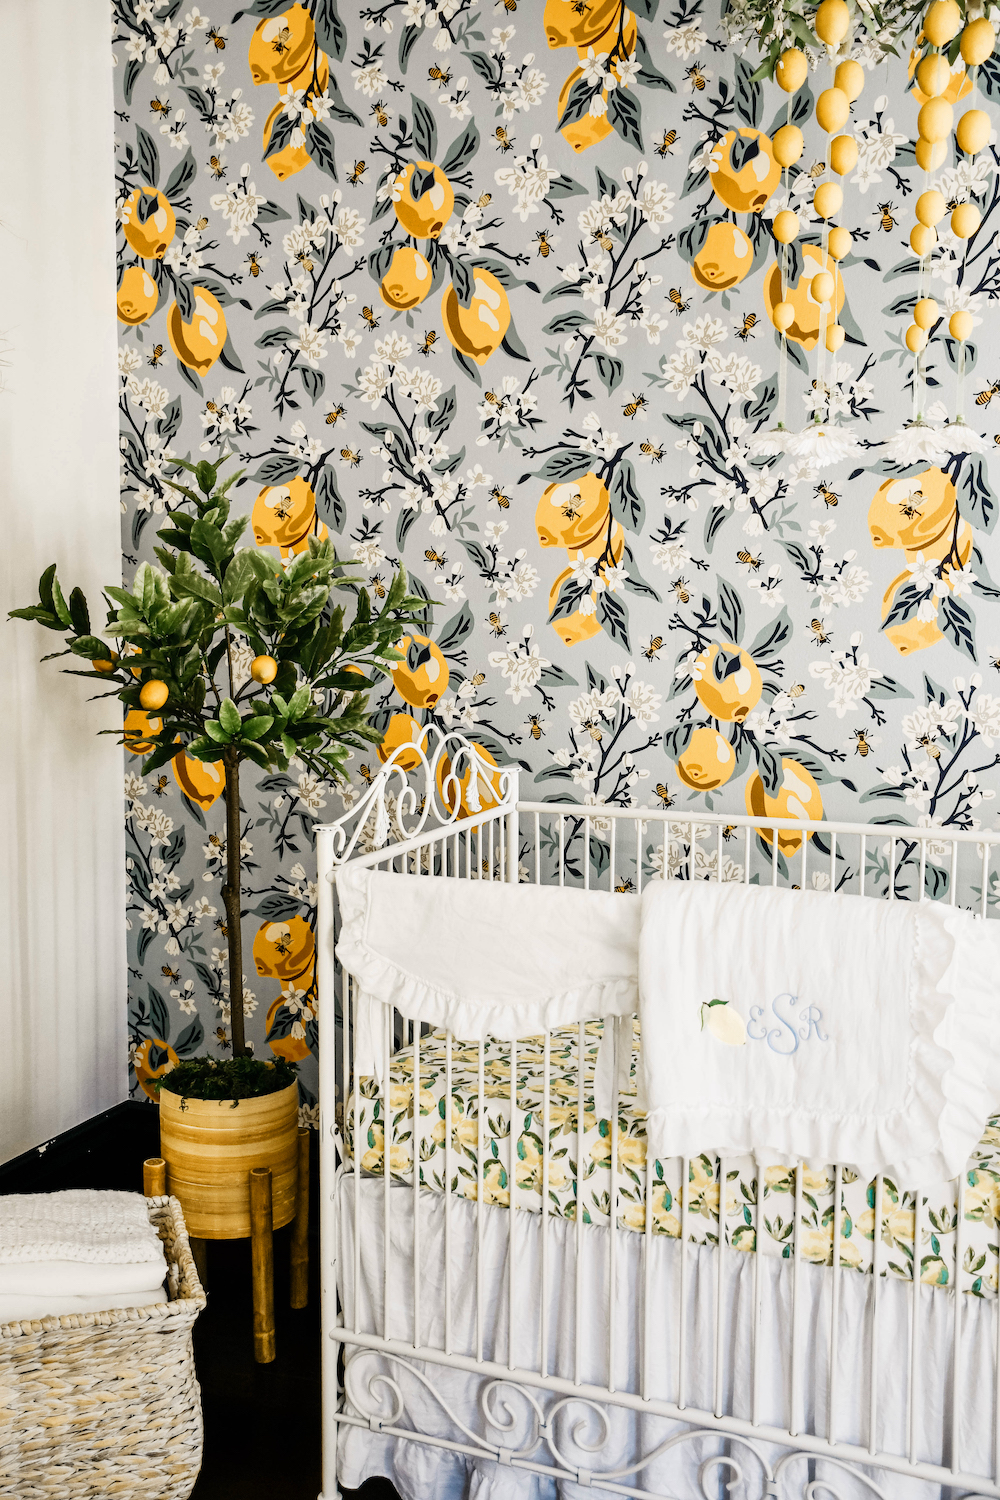 Lemon wallpaper in the nursery | Spoonflower Blog